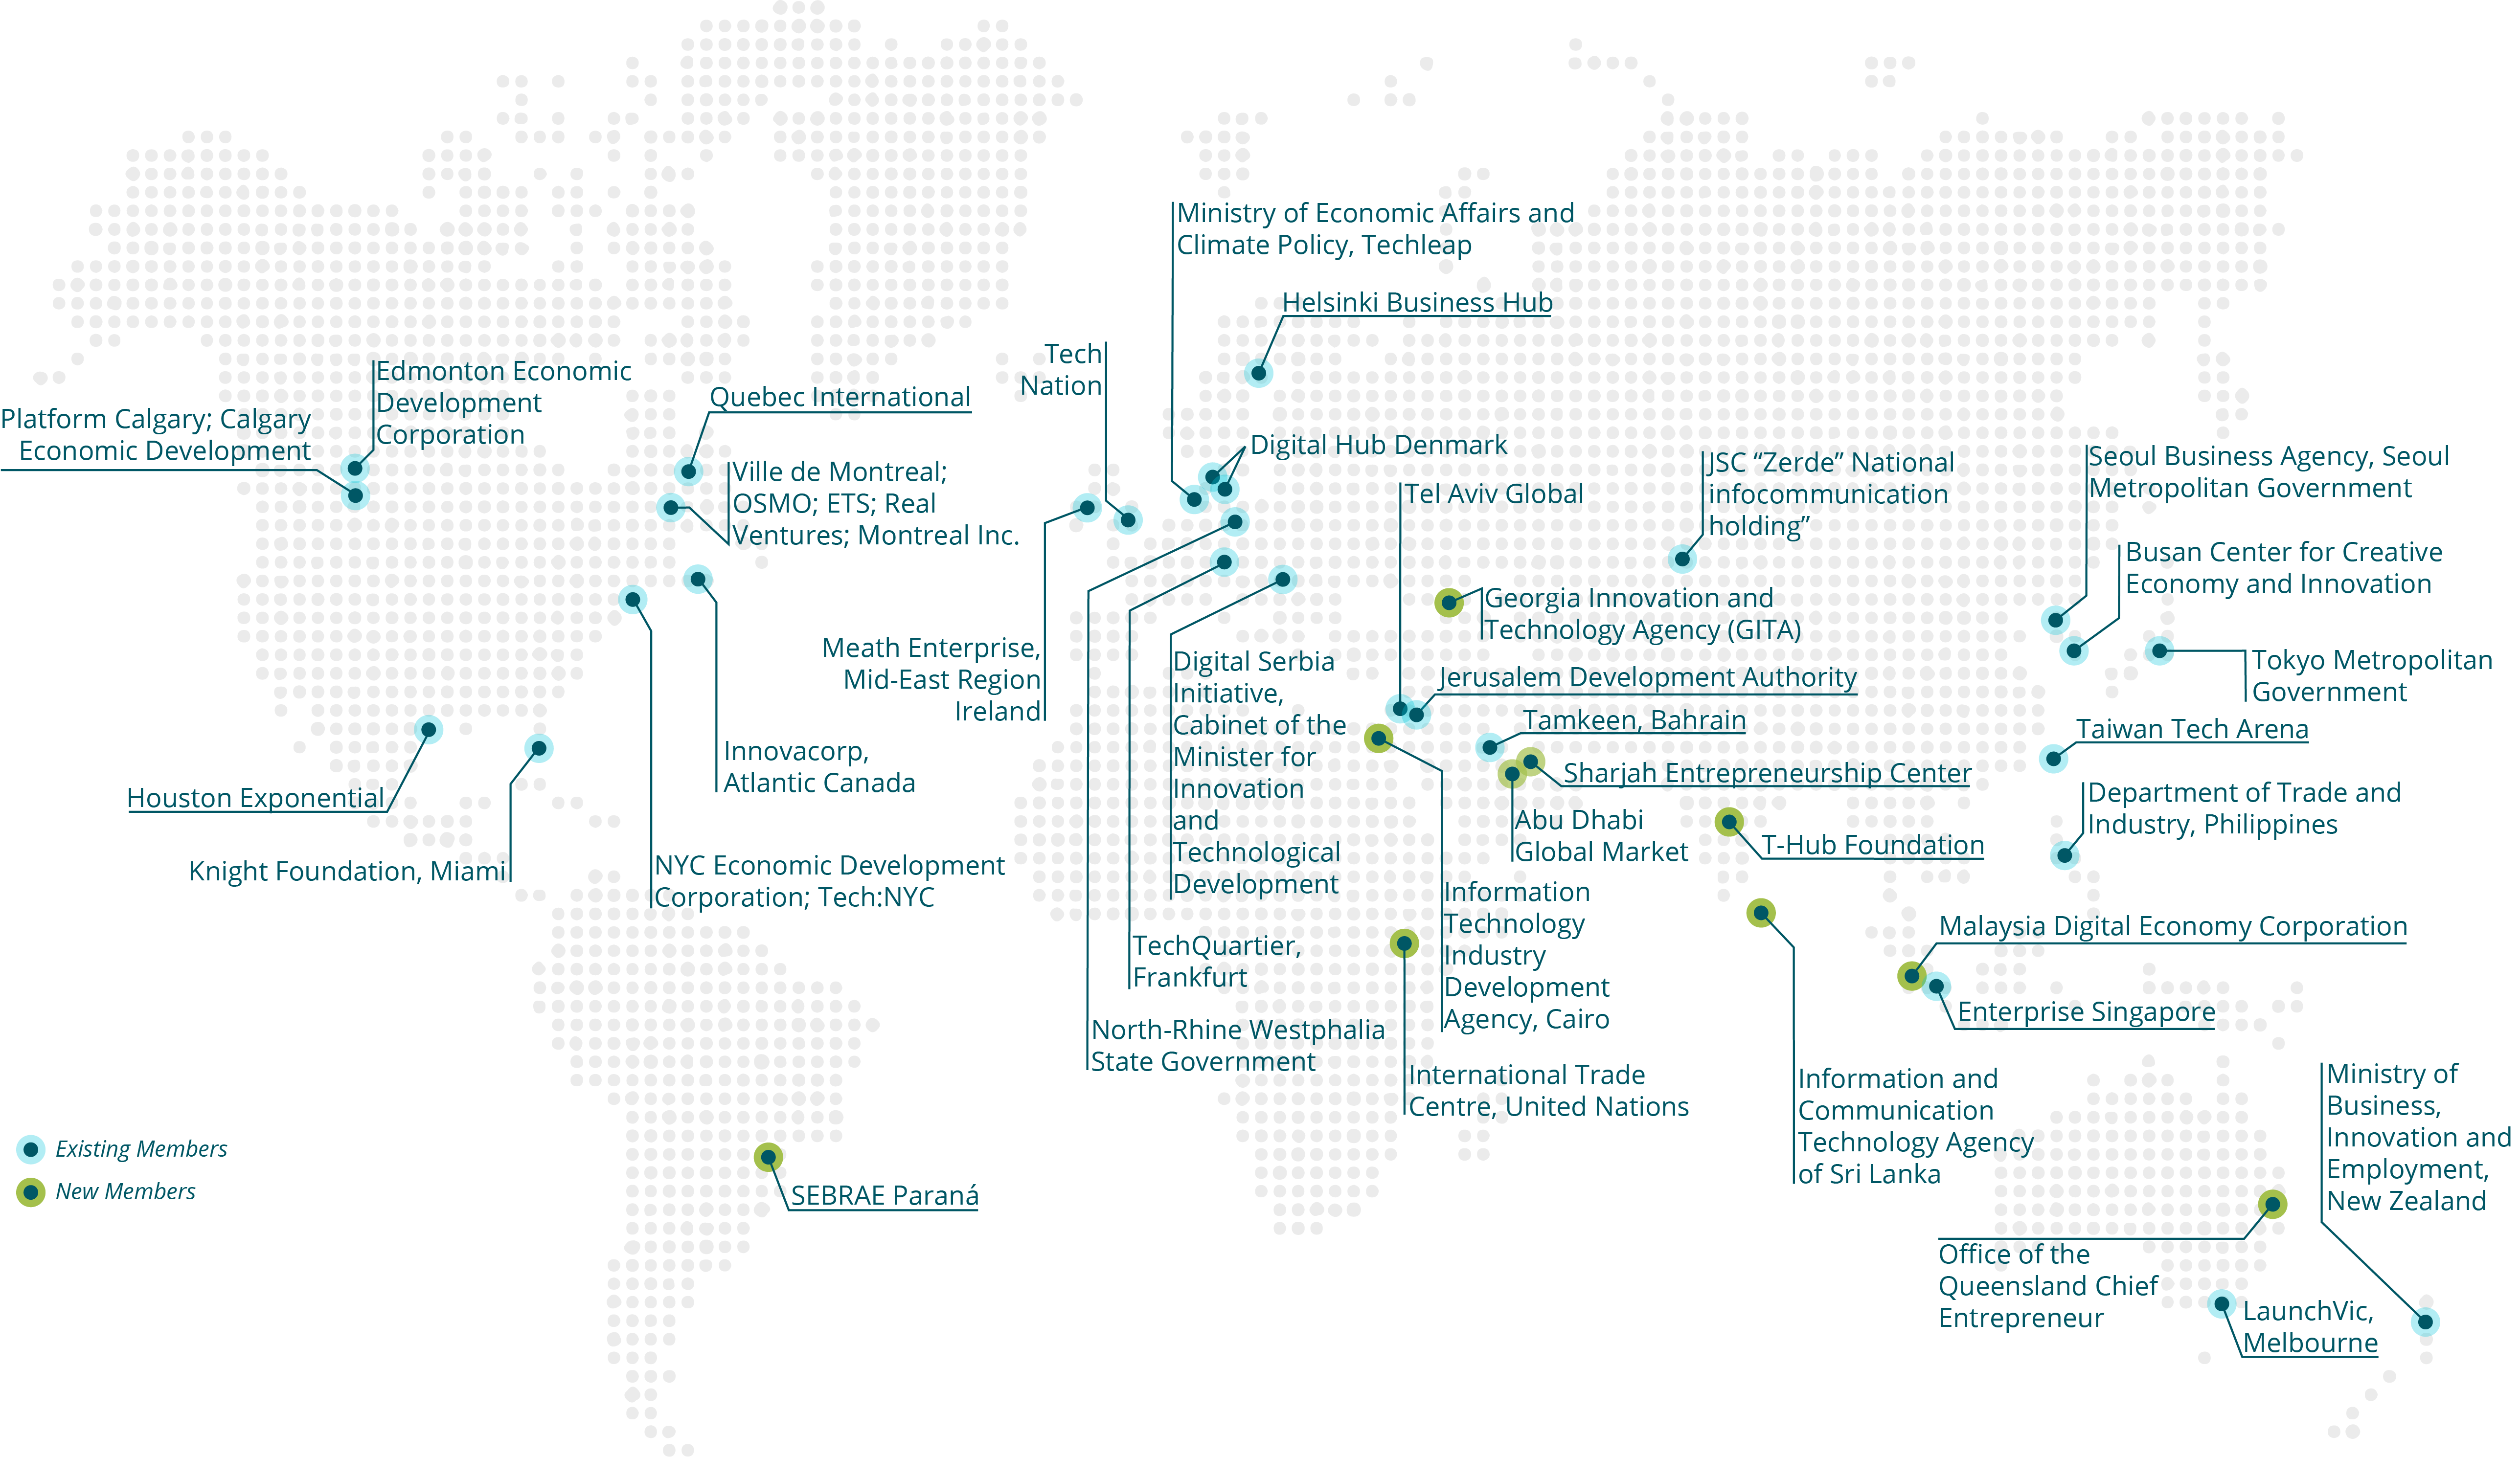 The Global Startup Ecosystem Report 2020 (GSER 2020)